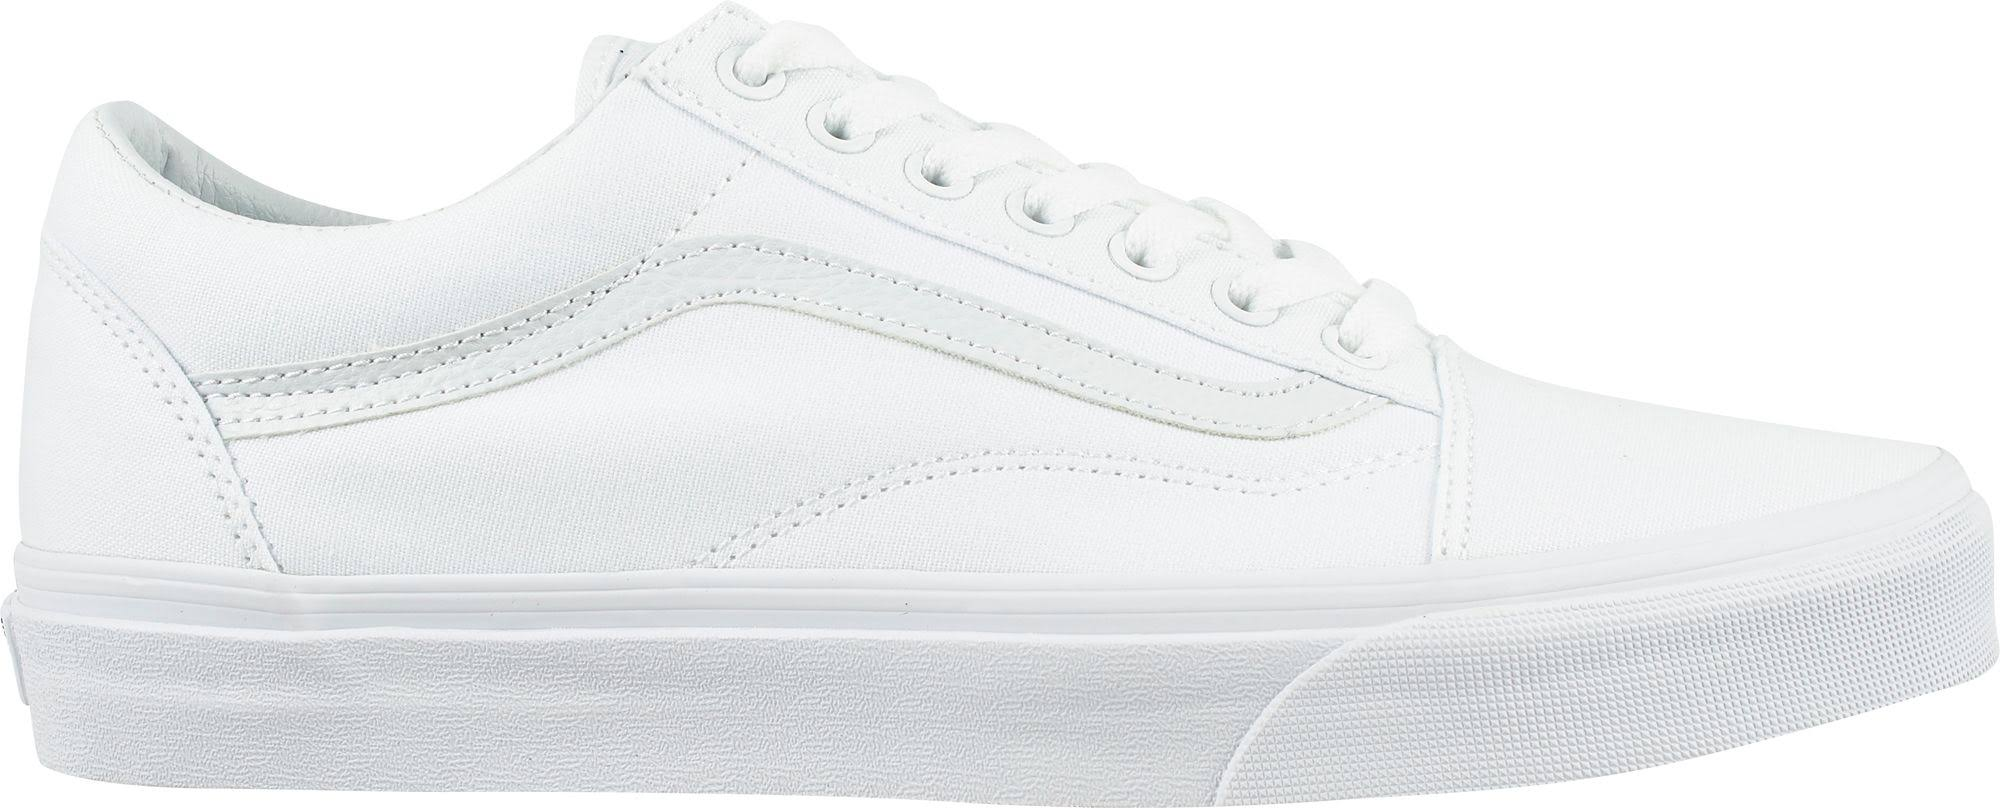 Skool White 5 Vans Old True 4 Womens 6 Mens twU565Aq